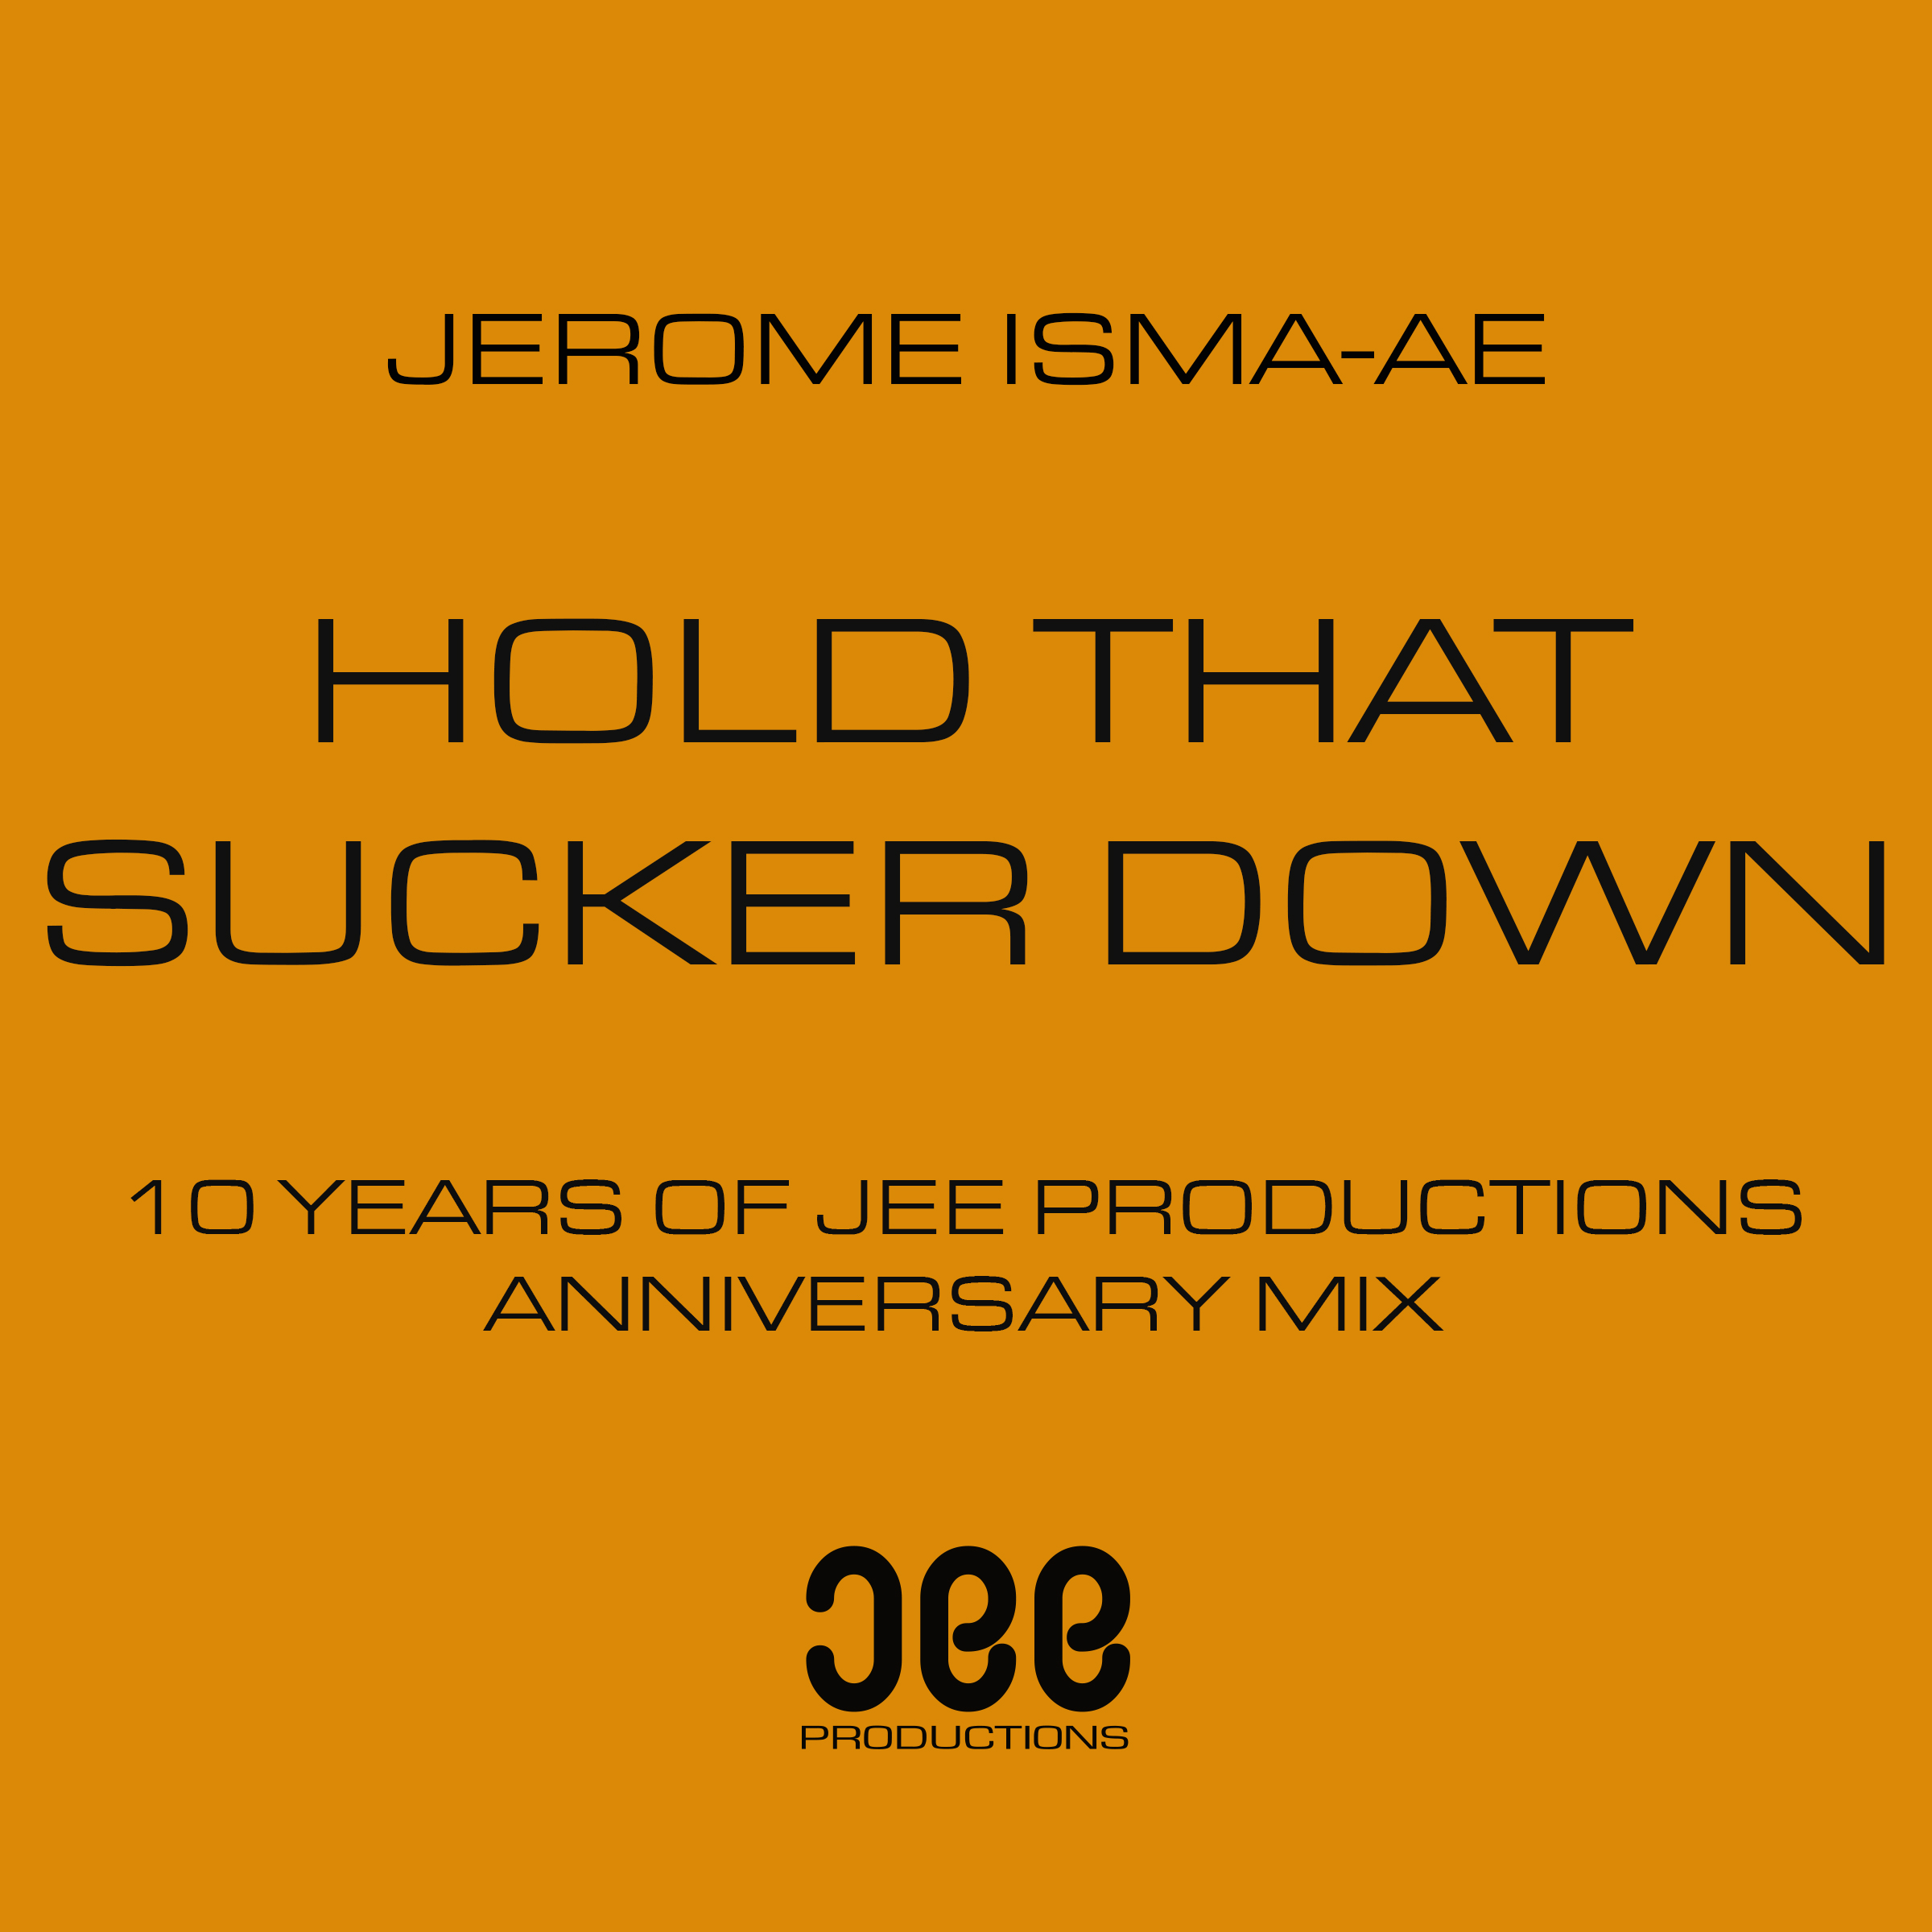 Jerome Isma-Ae - Hold That Sucker Down